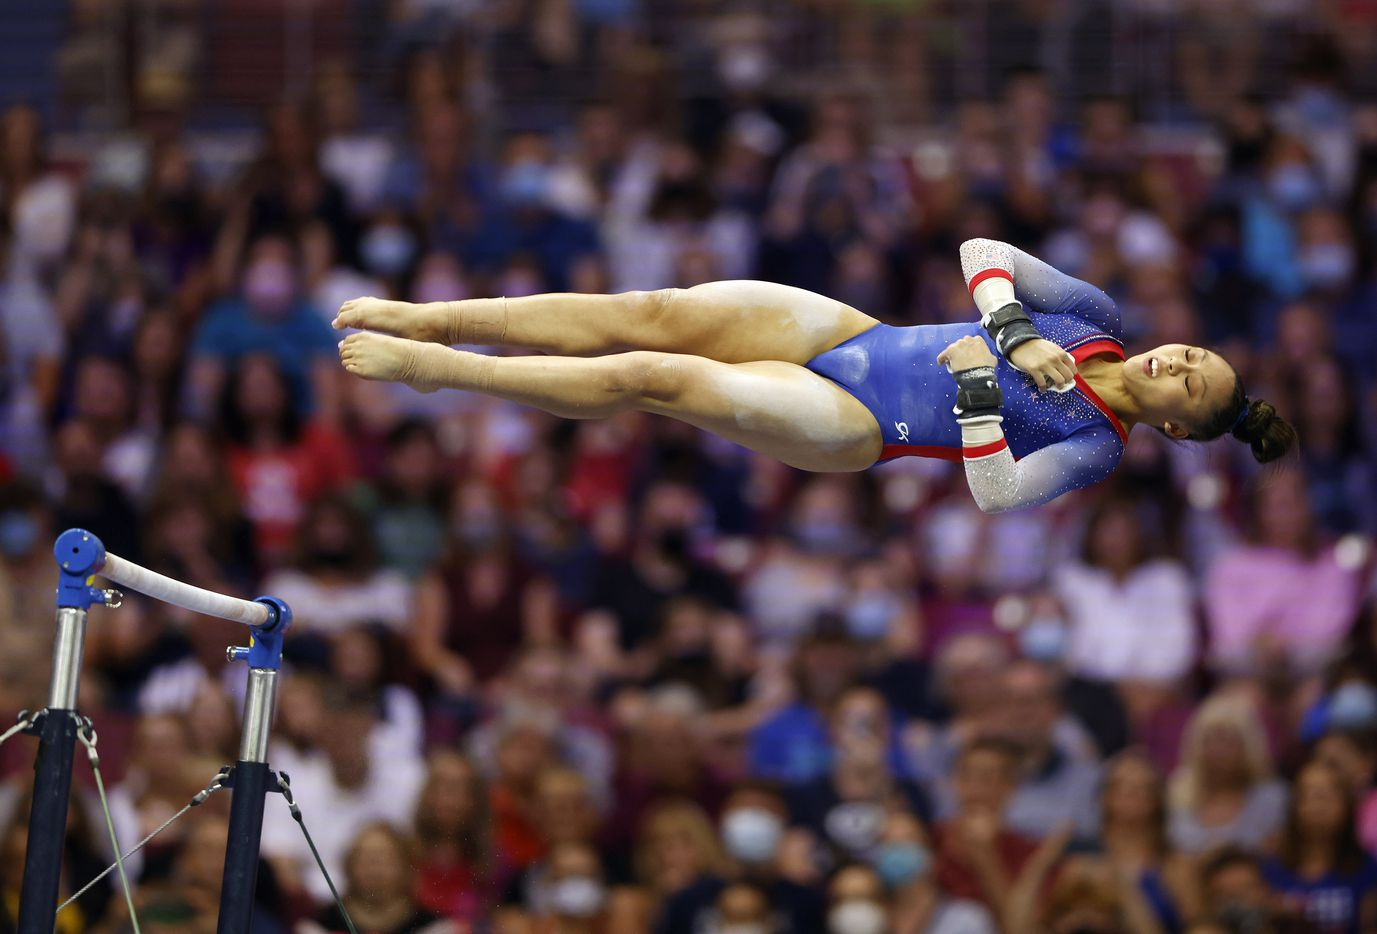 Emma Malabuyo of Texas Dreams competes in the uneven bars during day 1 of the women's 2021 U.S. Olympic Trials at America's Center on Friday, June 25, 2021 in St Louis, Missouri.(Vernon Bryant/The Dallas Morning News)